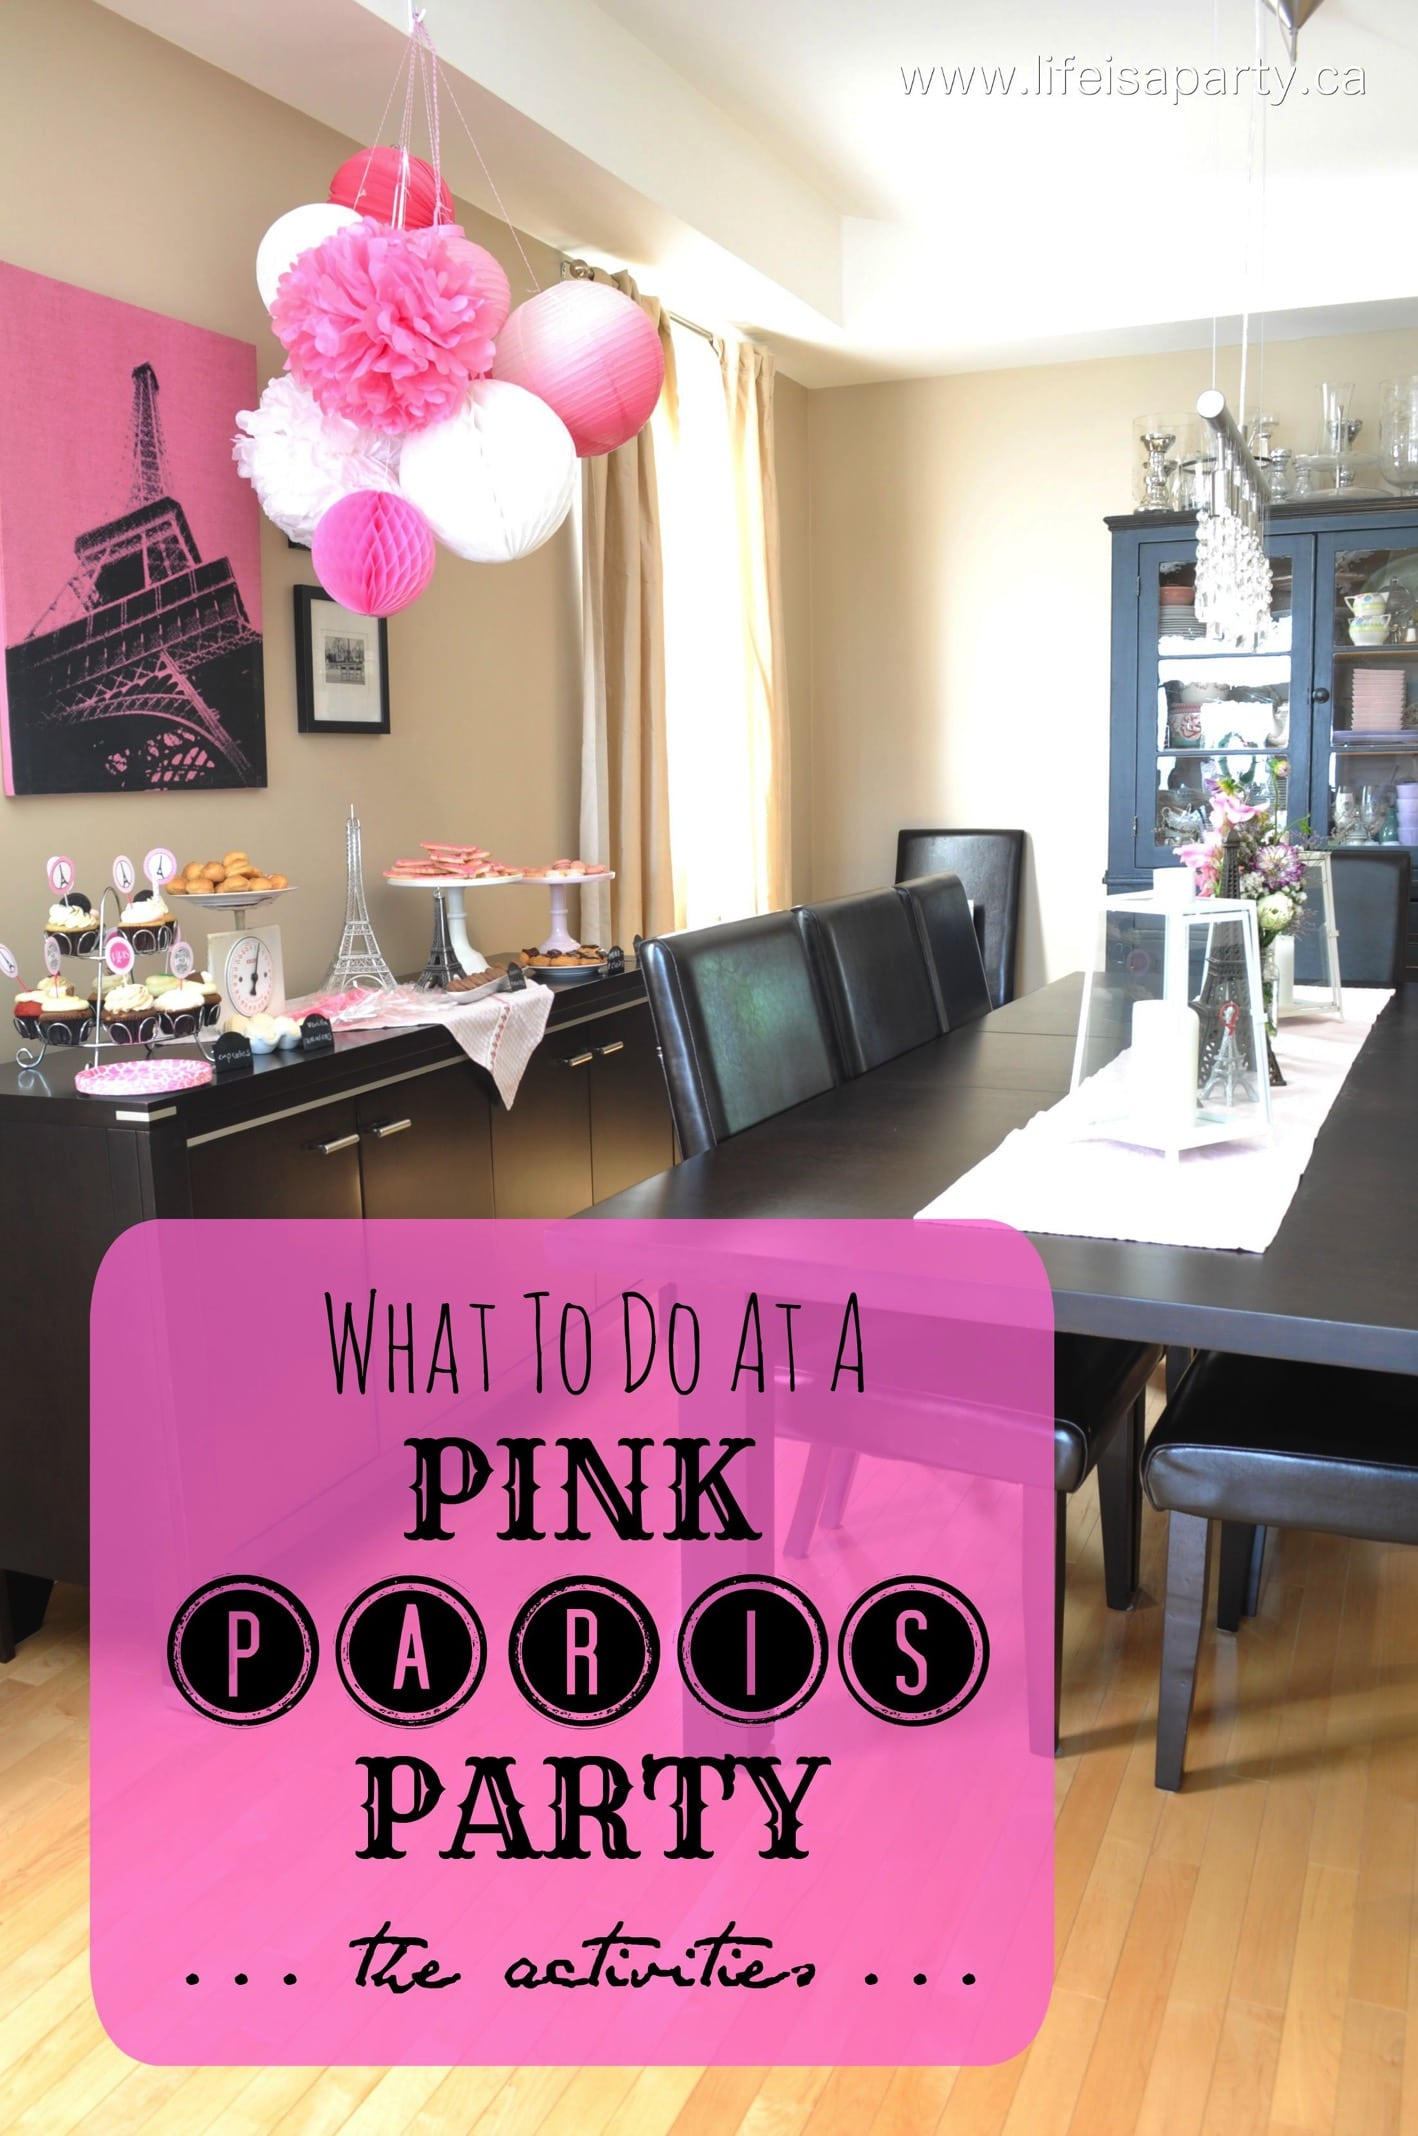 Paris Birthday Party  Part One: Party Activities And Decorations